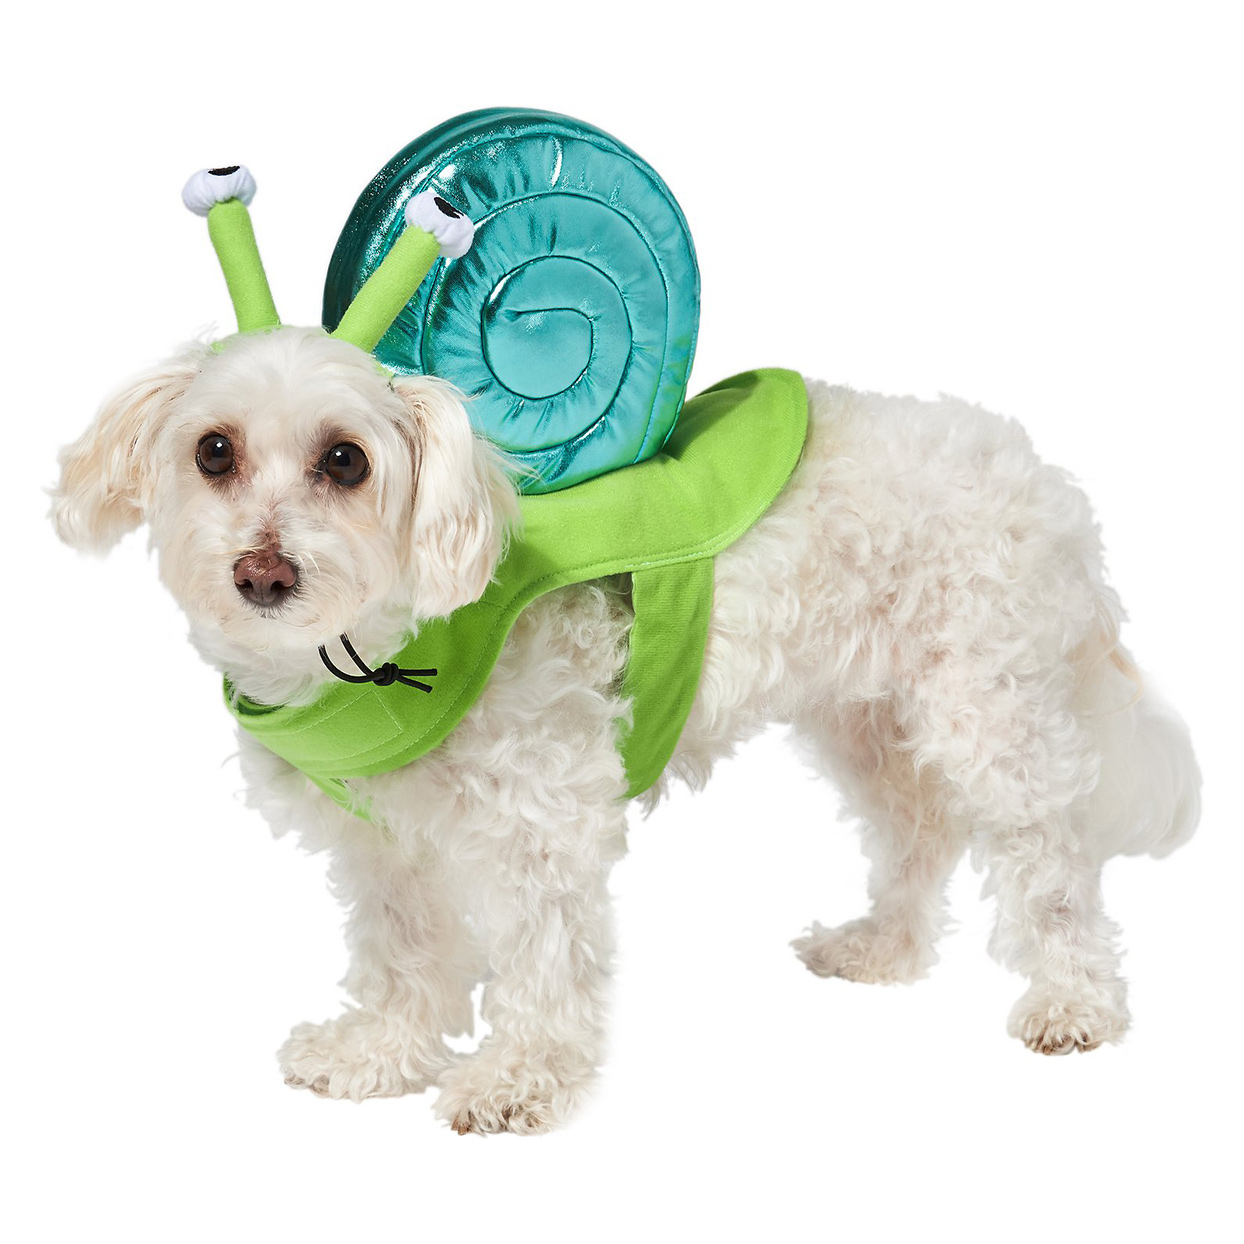 Dog wearing the Snail Dog & Cat Halloween Costume on a white background